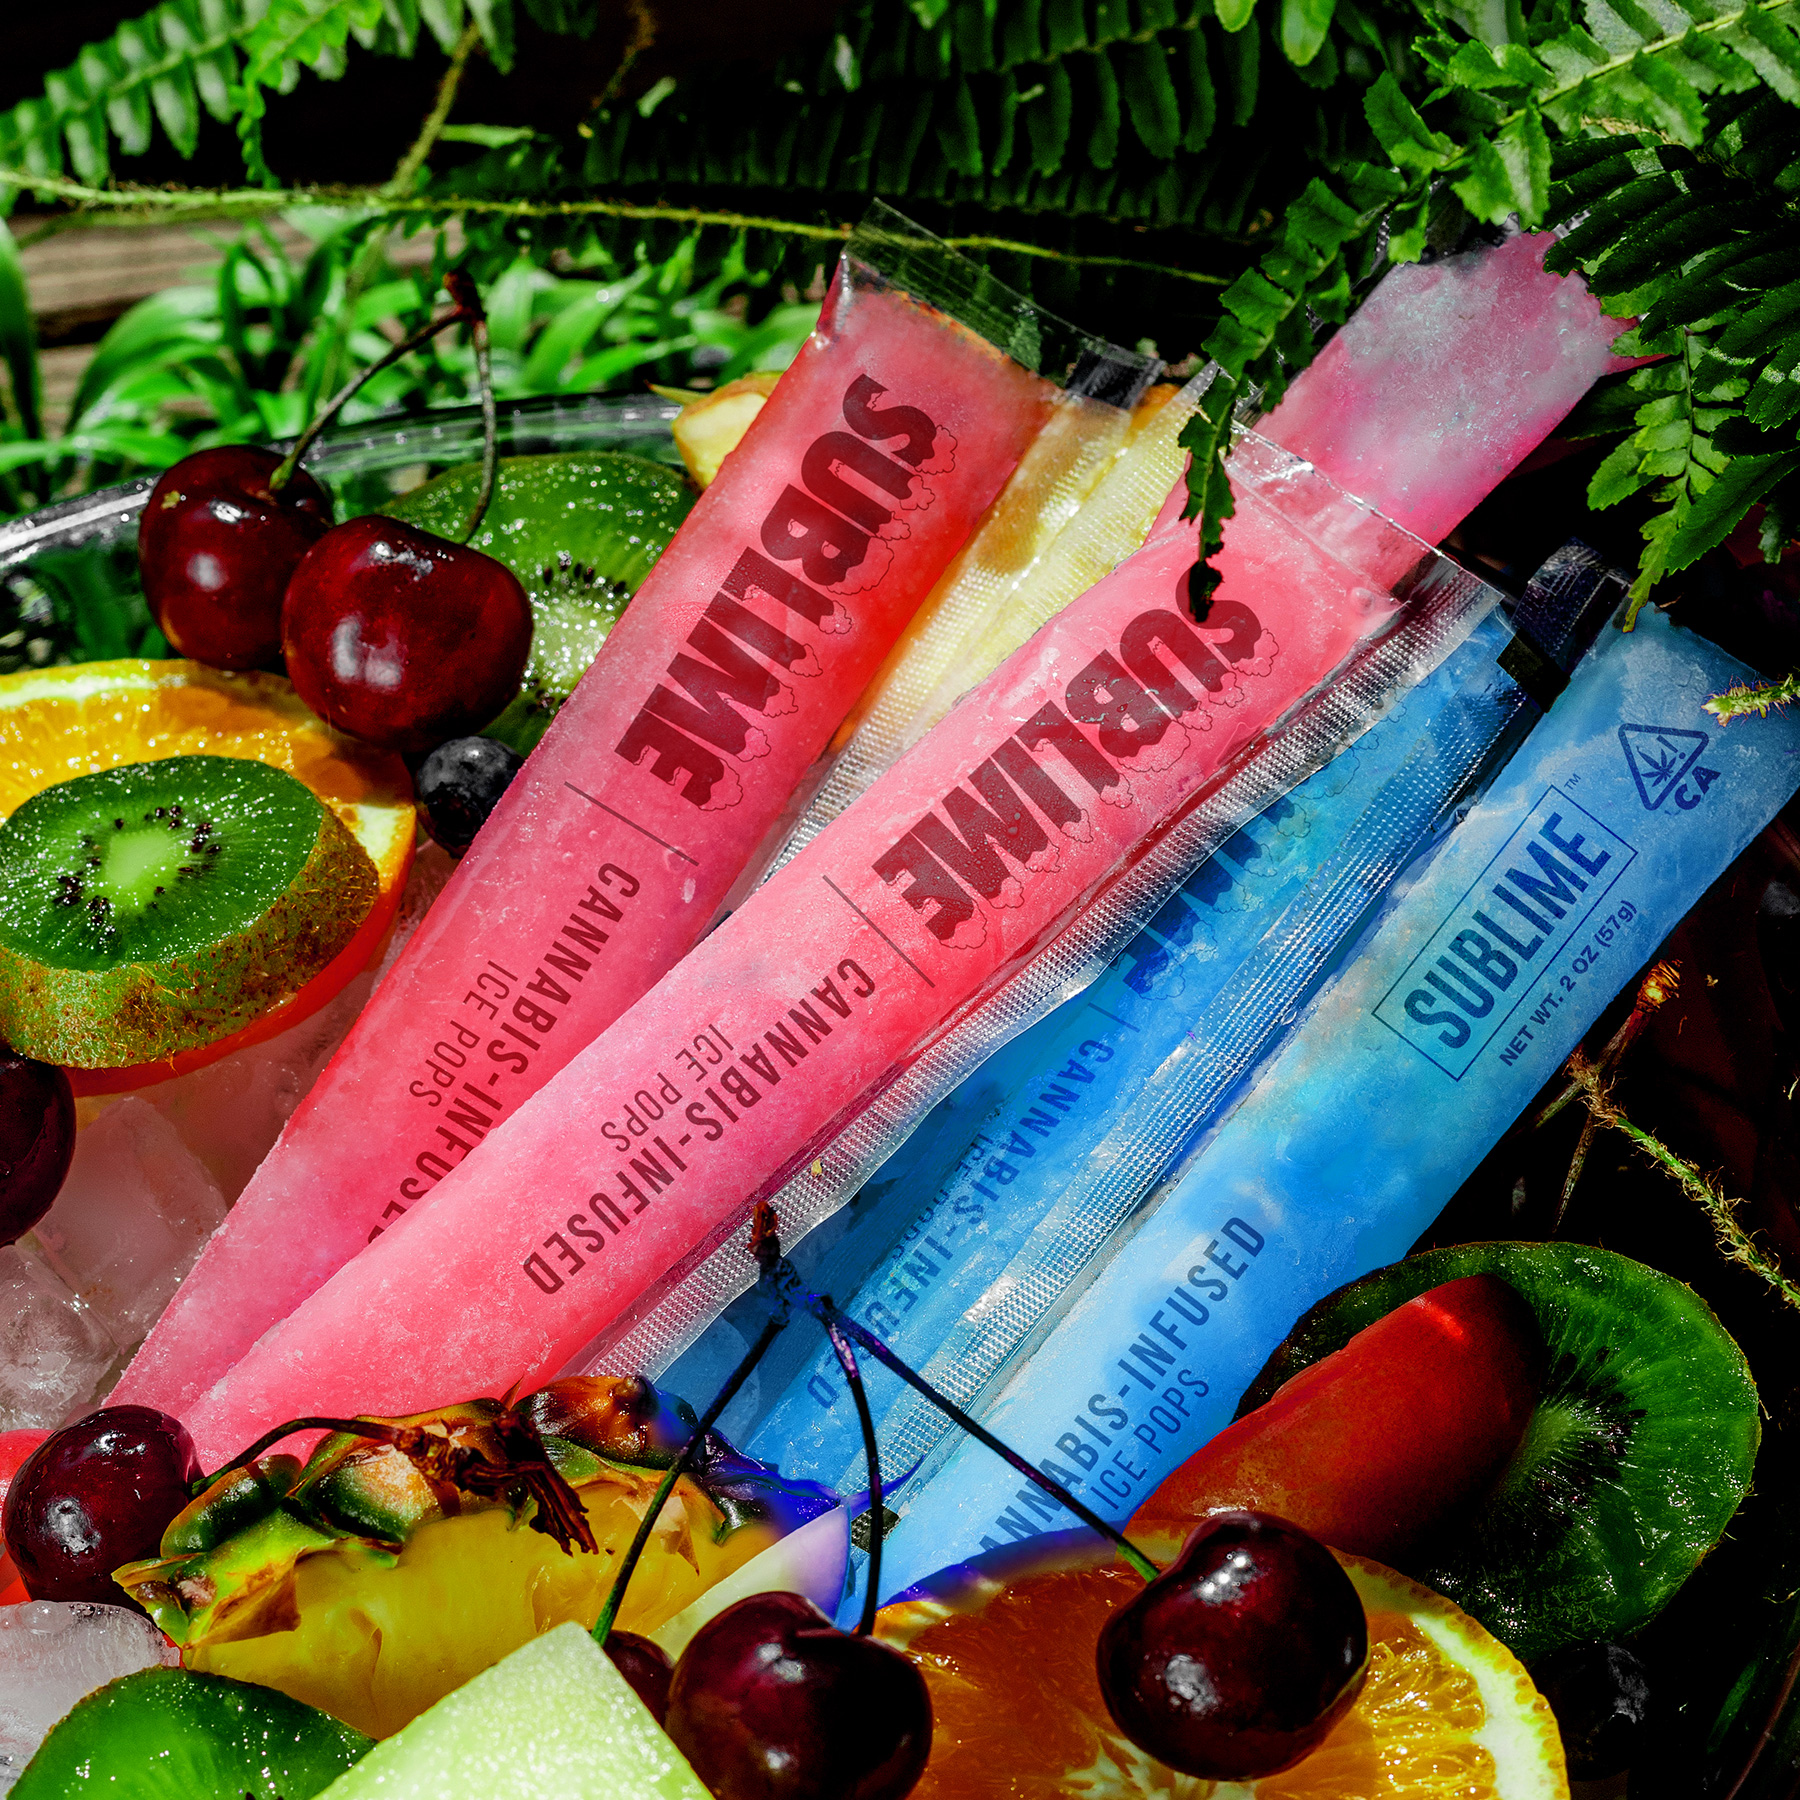 Sublime Ice Pops - CANNABIS - INFUSED ICE POPSBLUE RASPBERRY & FRUIT PUNCHAt 10mg THC per serving, they are a sweet treat for the pool, a backyard barbeque or kicking back year-round with friends. The first of their kind, Sublime Ice Pops come in two throwback flavors – Blue Raspberry and Fruit Punch. They are best enjoyed straight out of the freezer for a dose of fun anytime.